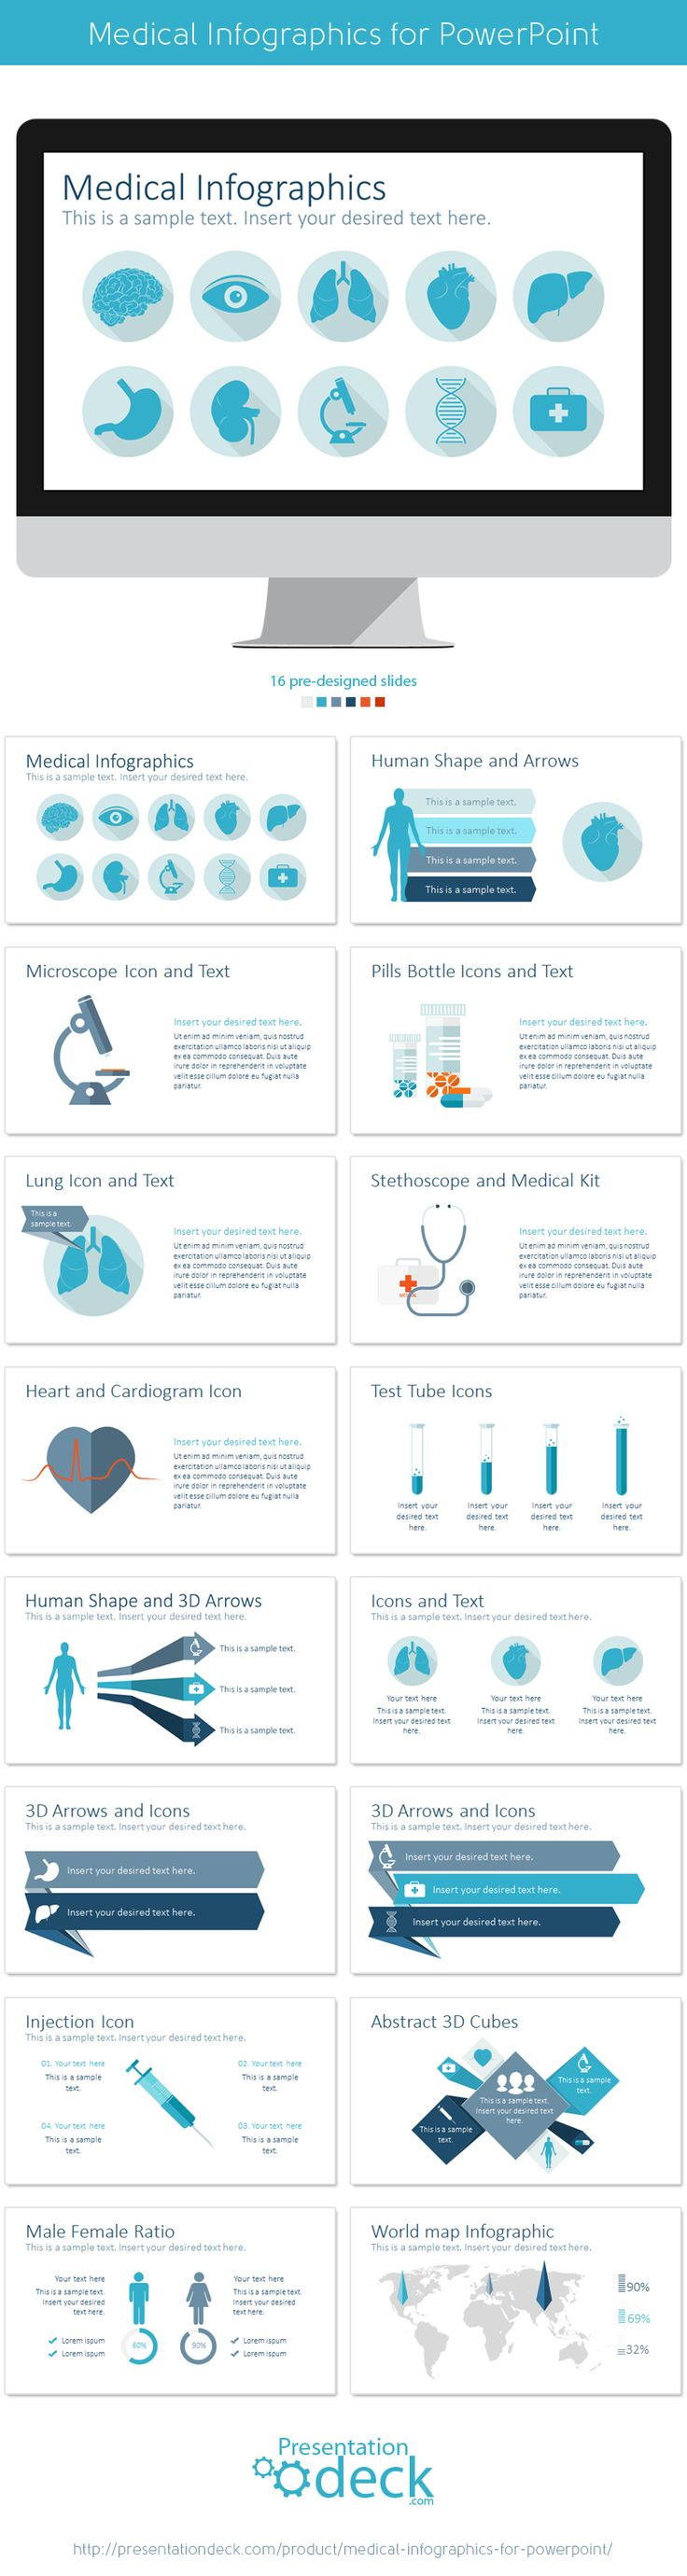 Medical Infographics for PowerPoint with 16 pre-designed slides.